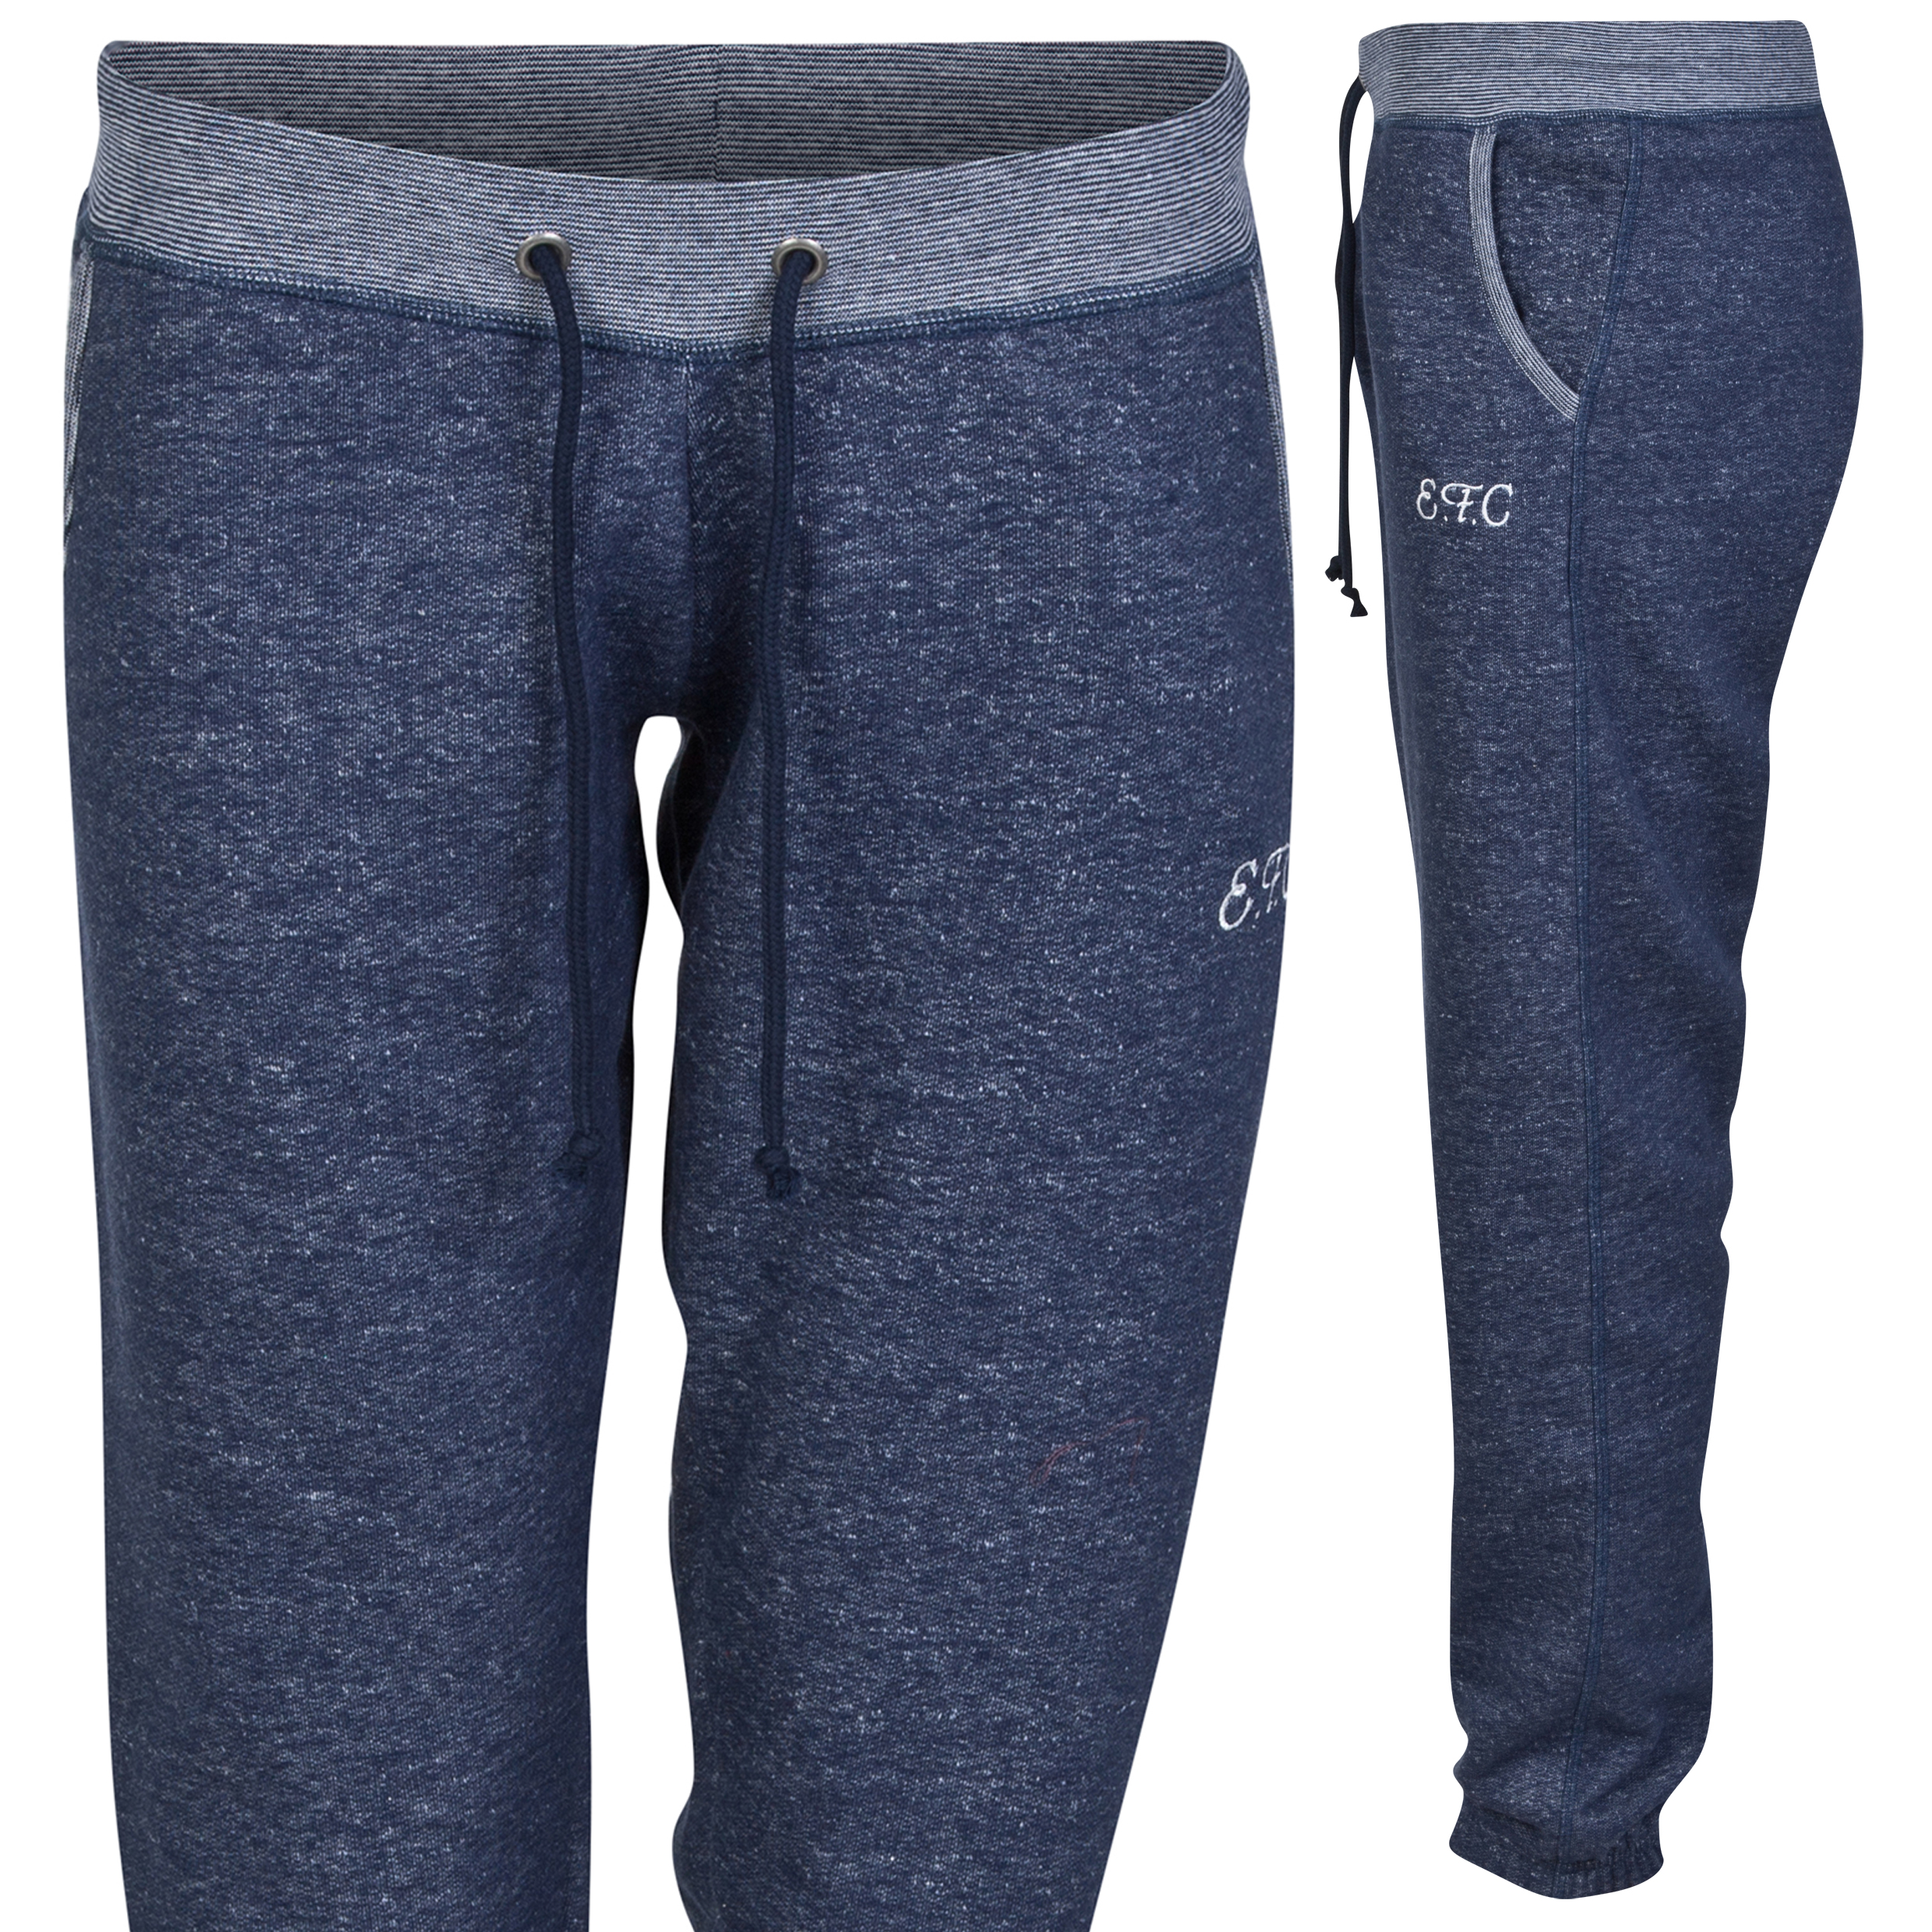 Everton Jog Pants- Denim Marl - Womens